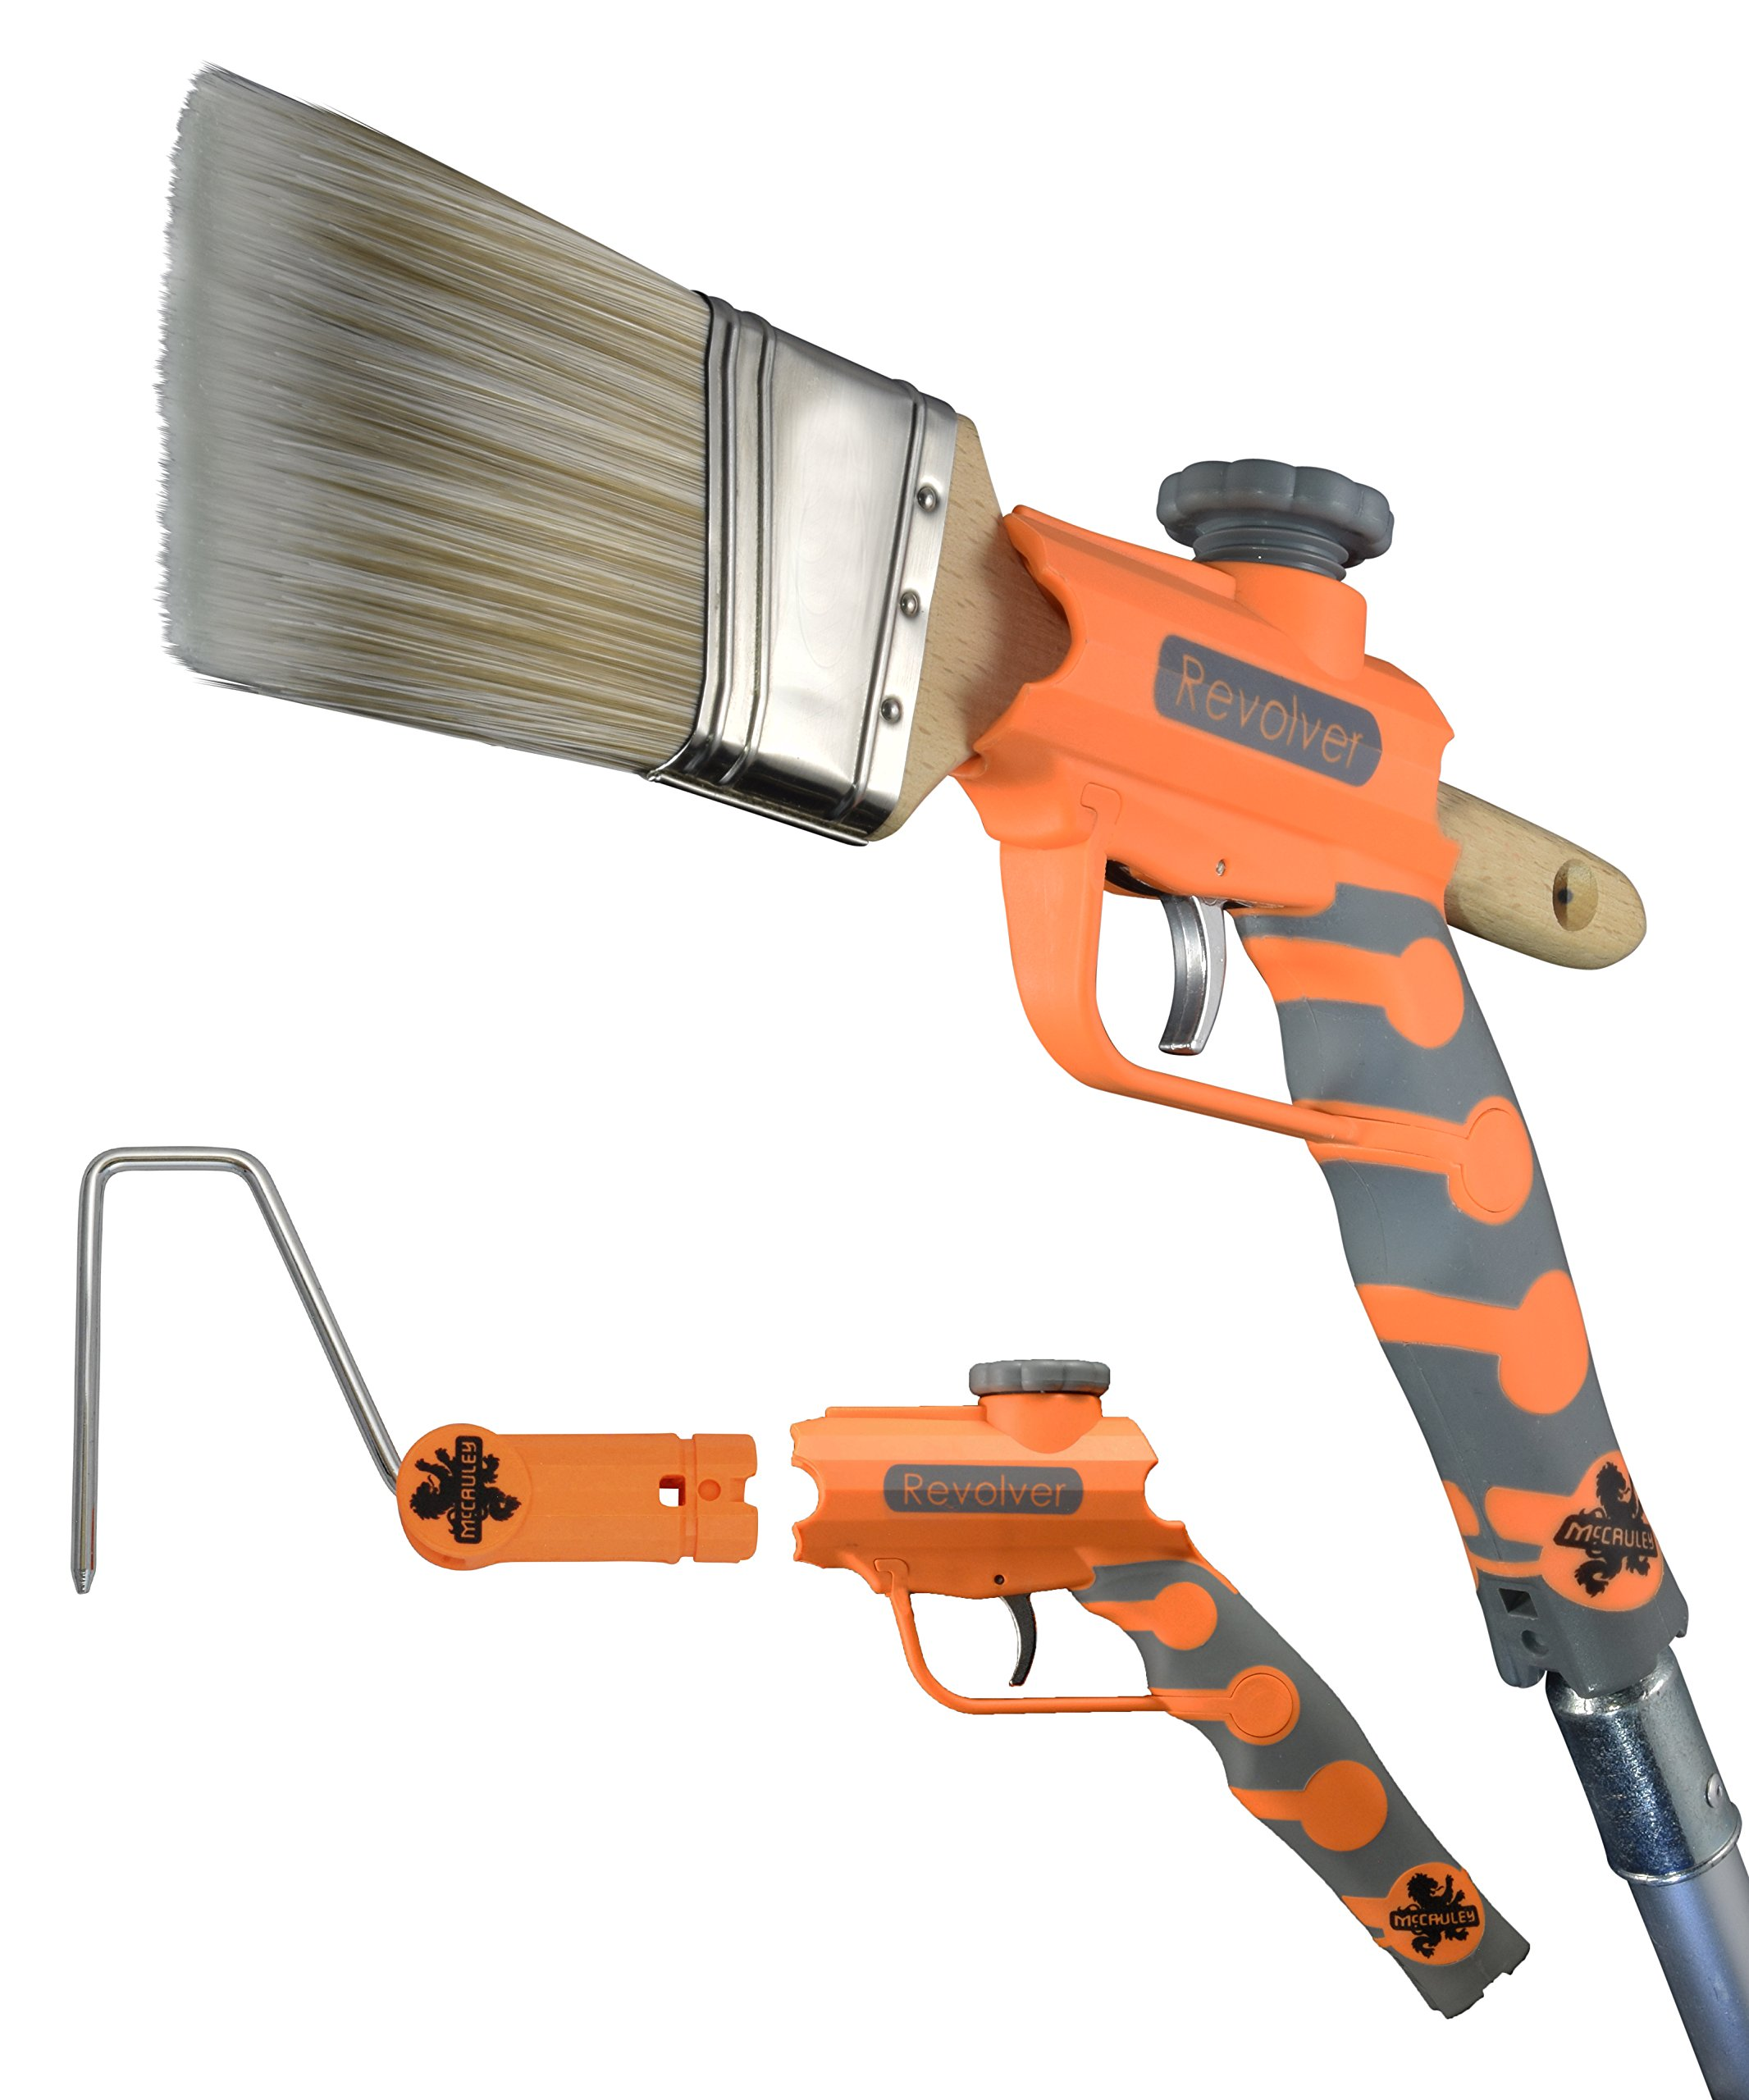 McCauley Tools -REVOLVER- Multi Position Paint Brush and Roller Extender for threaded and locking poles. by MCCAULEY